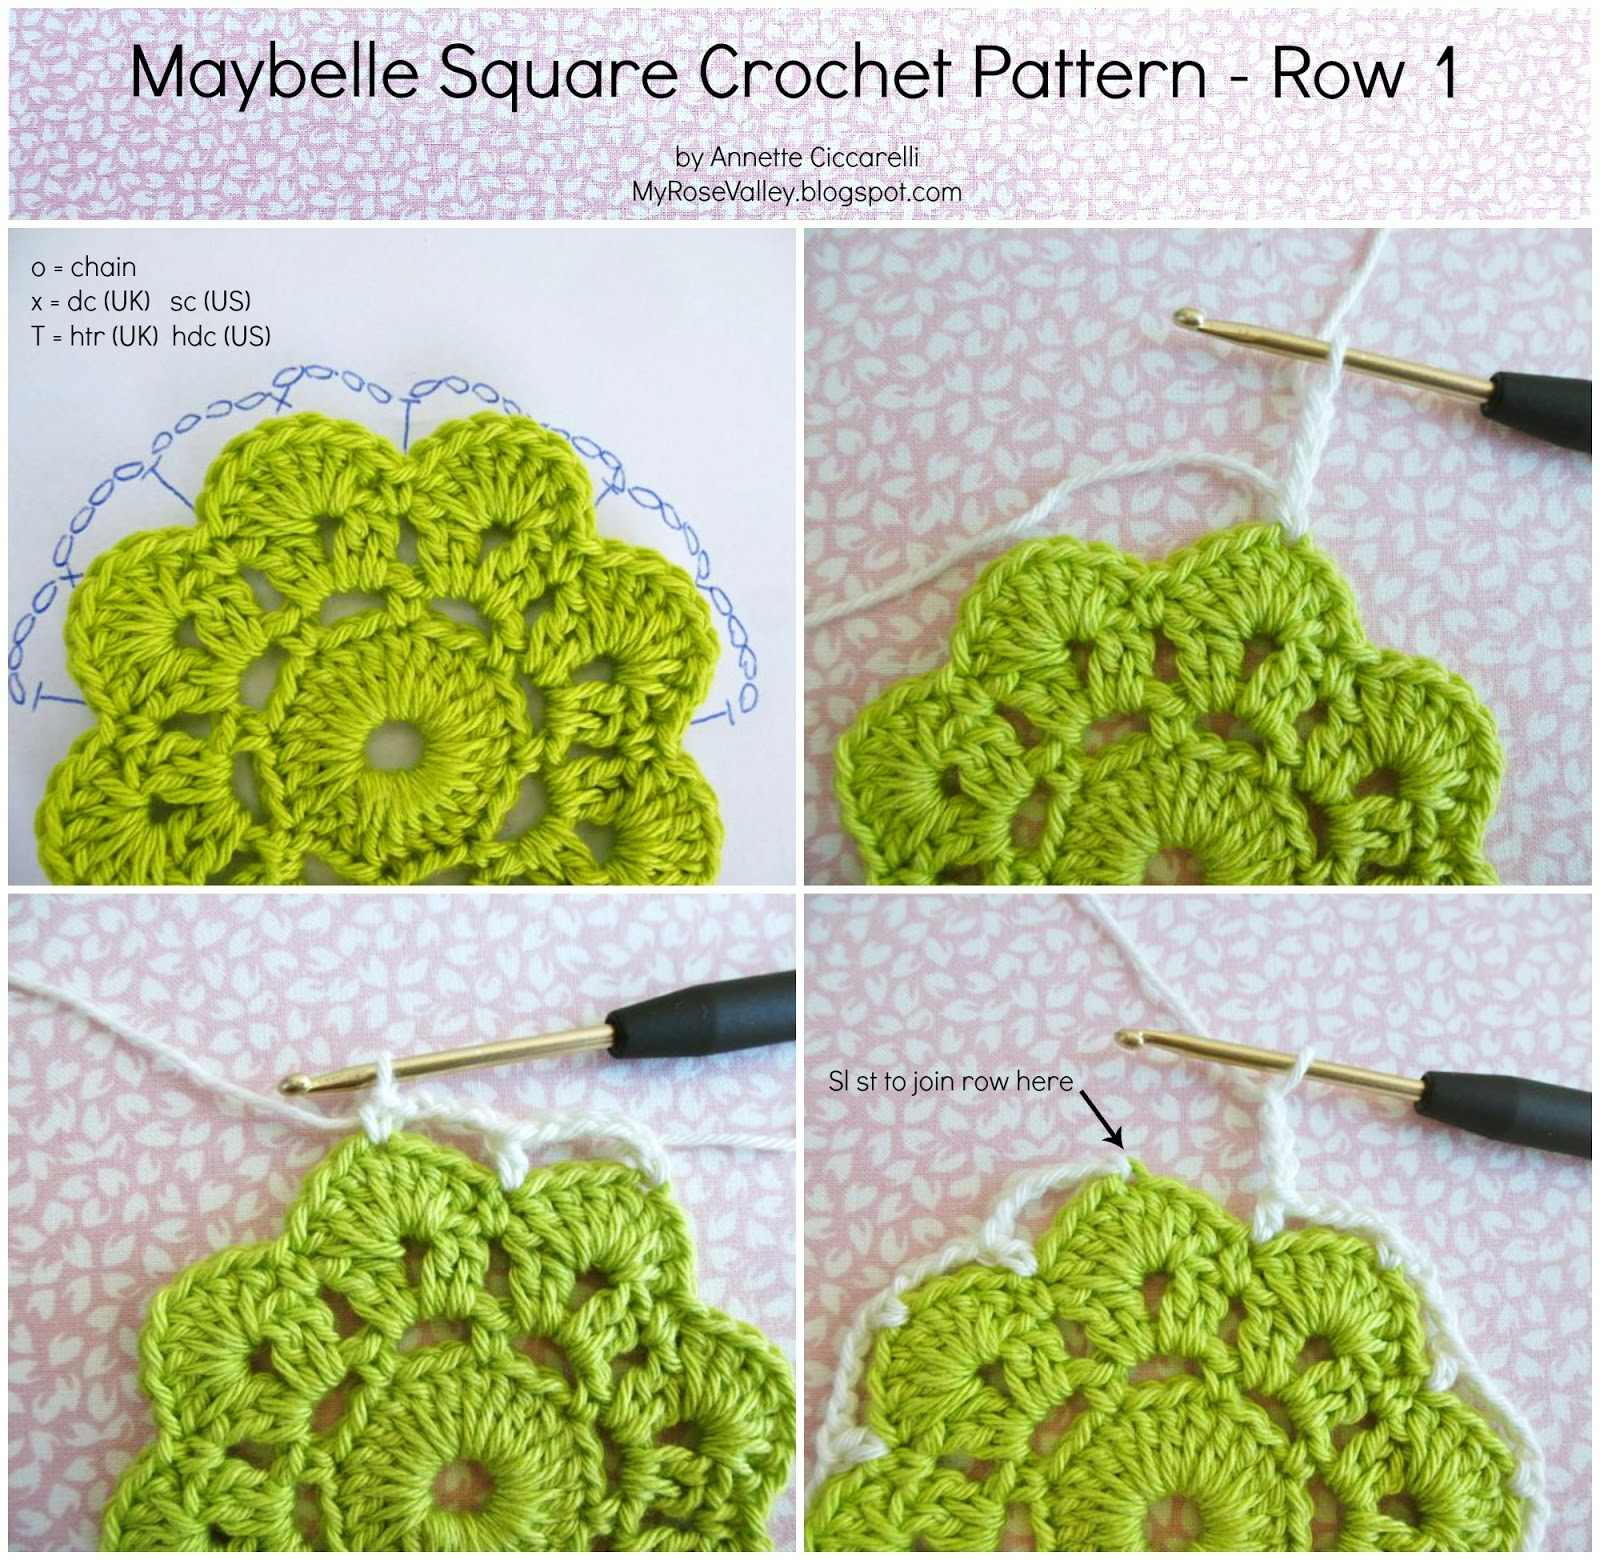 Crochet New Stitches Pinterest : Maybelle Square Crochet Pattern. New Crochet Patterns From Pinterest ...